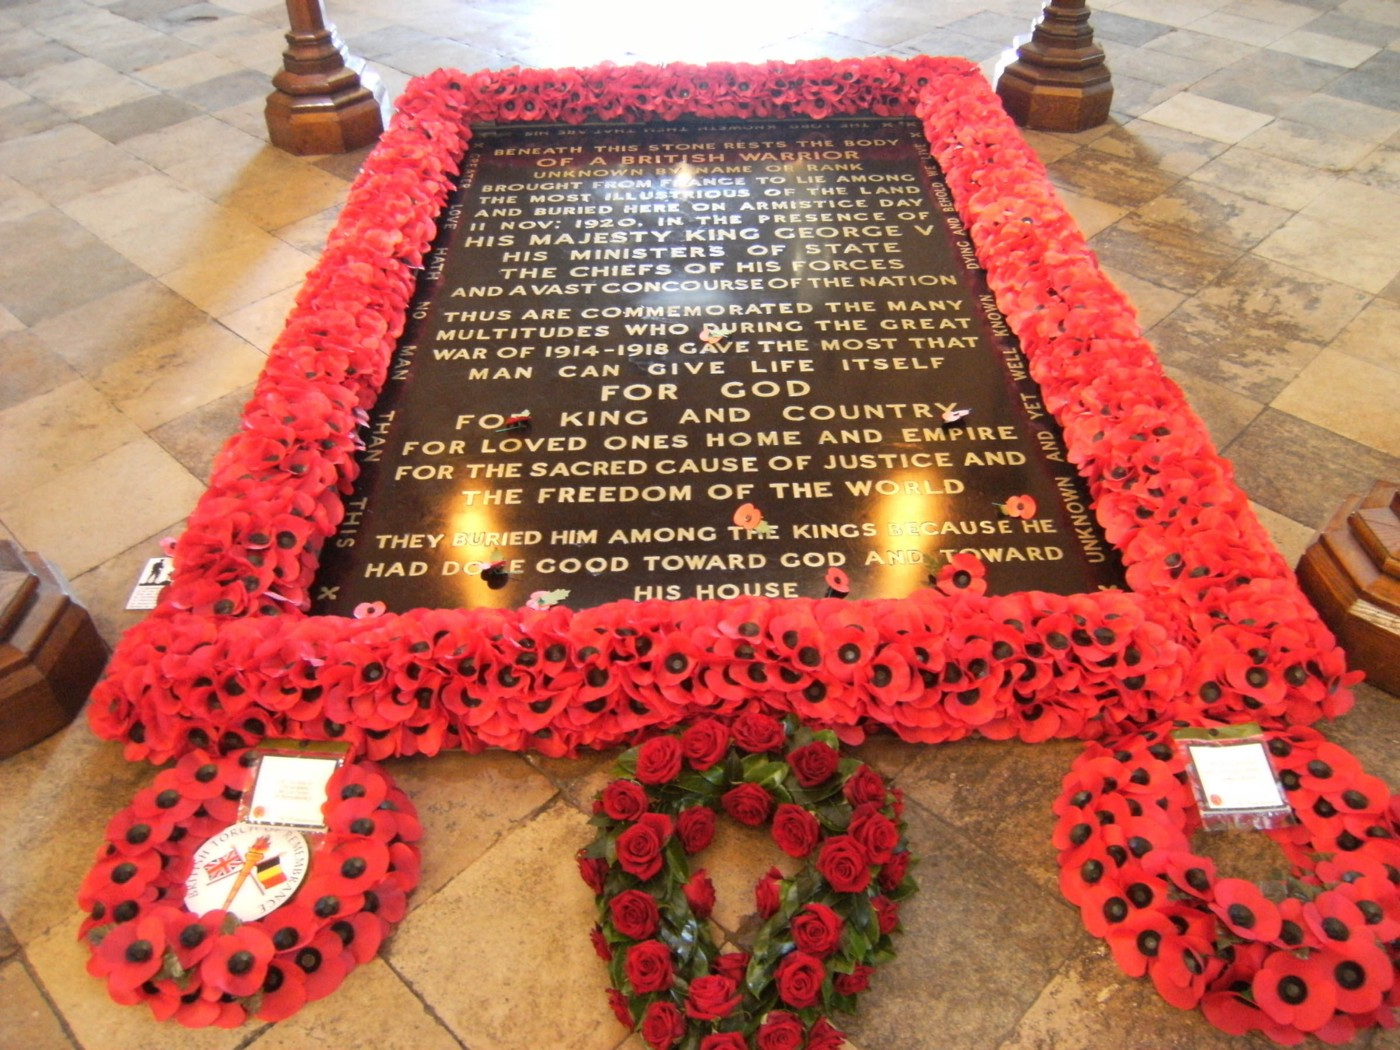 An image of the Tomb of the Unknown Warrior in Westminster Abbey. A black grave set into a tile floor surrounded by poppies and with three poppy wreaths lying in front.